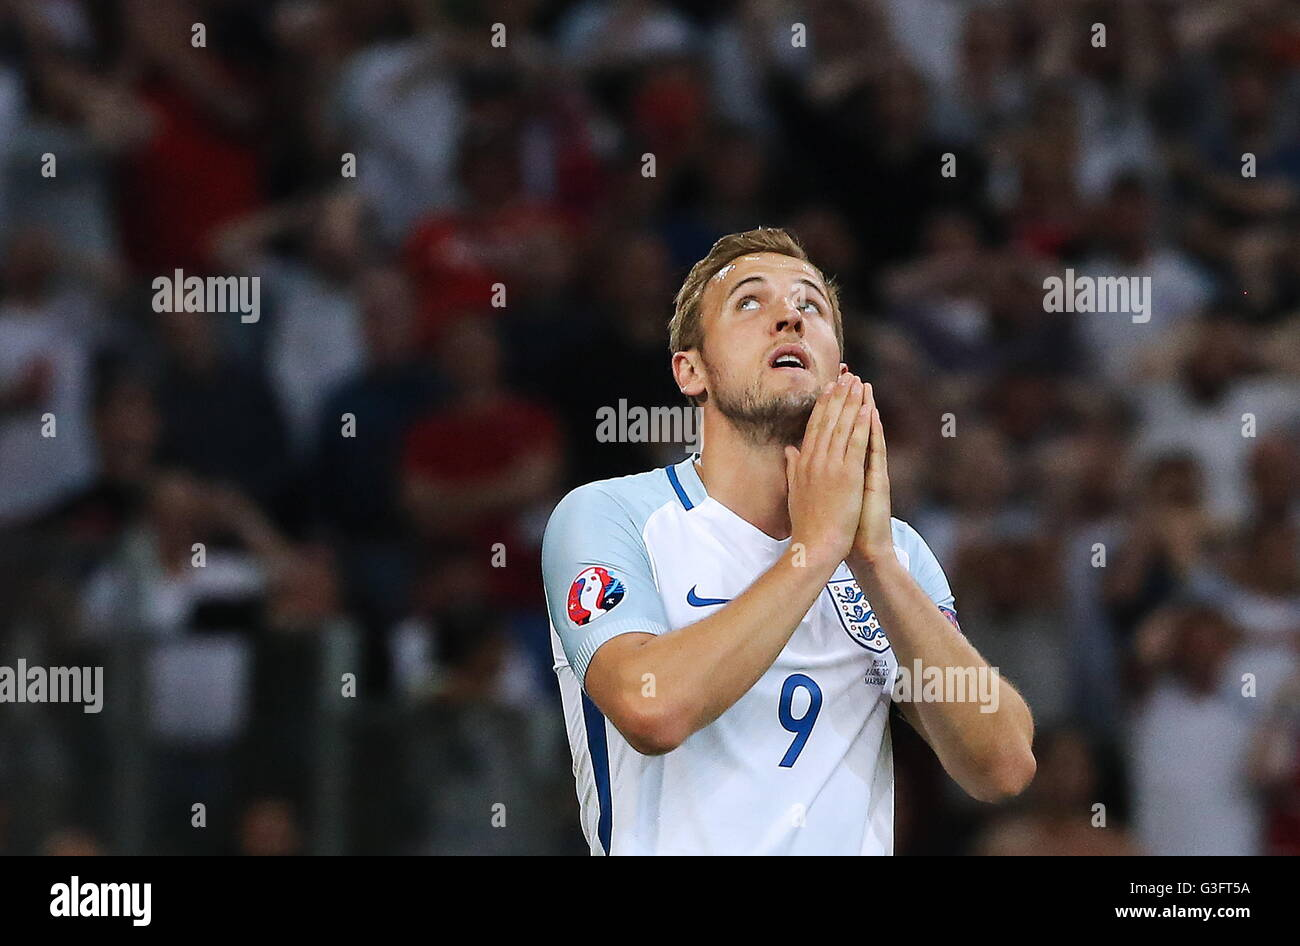 MARSEILLE, FRANCE - JUNE 11, 2016: England's Harry Kane in the 2016 UEFA European Championship Group B football - Stock Image